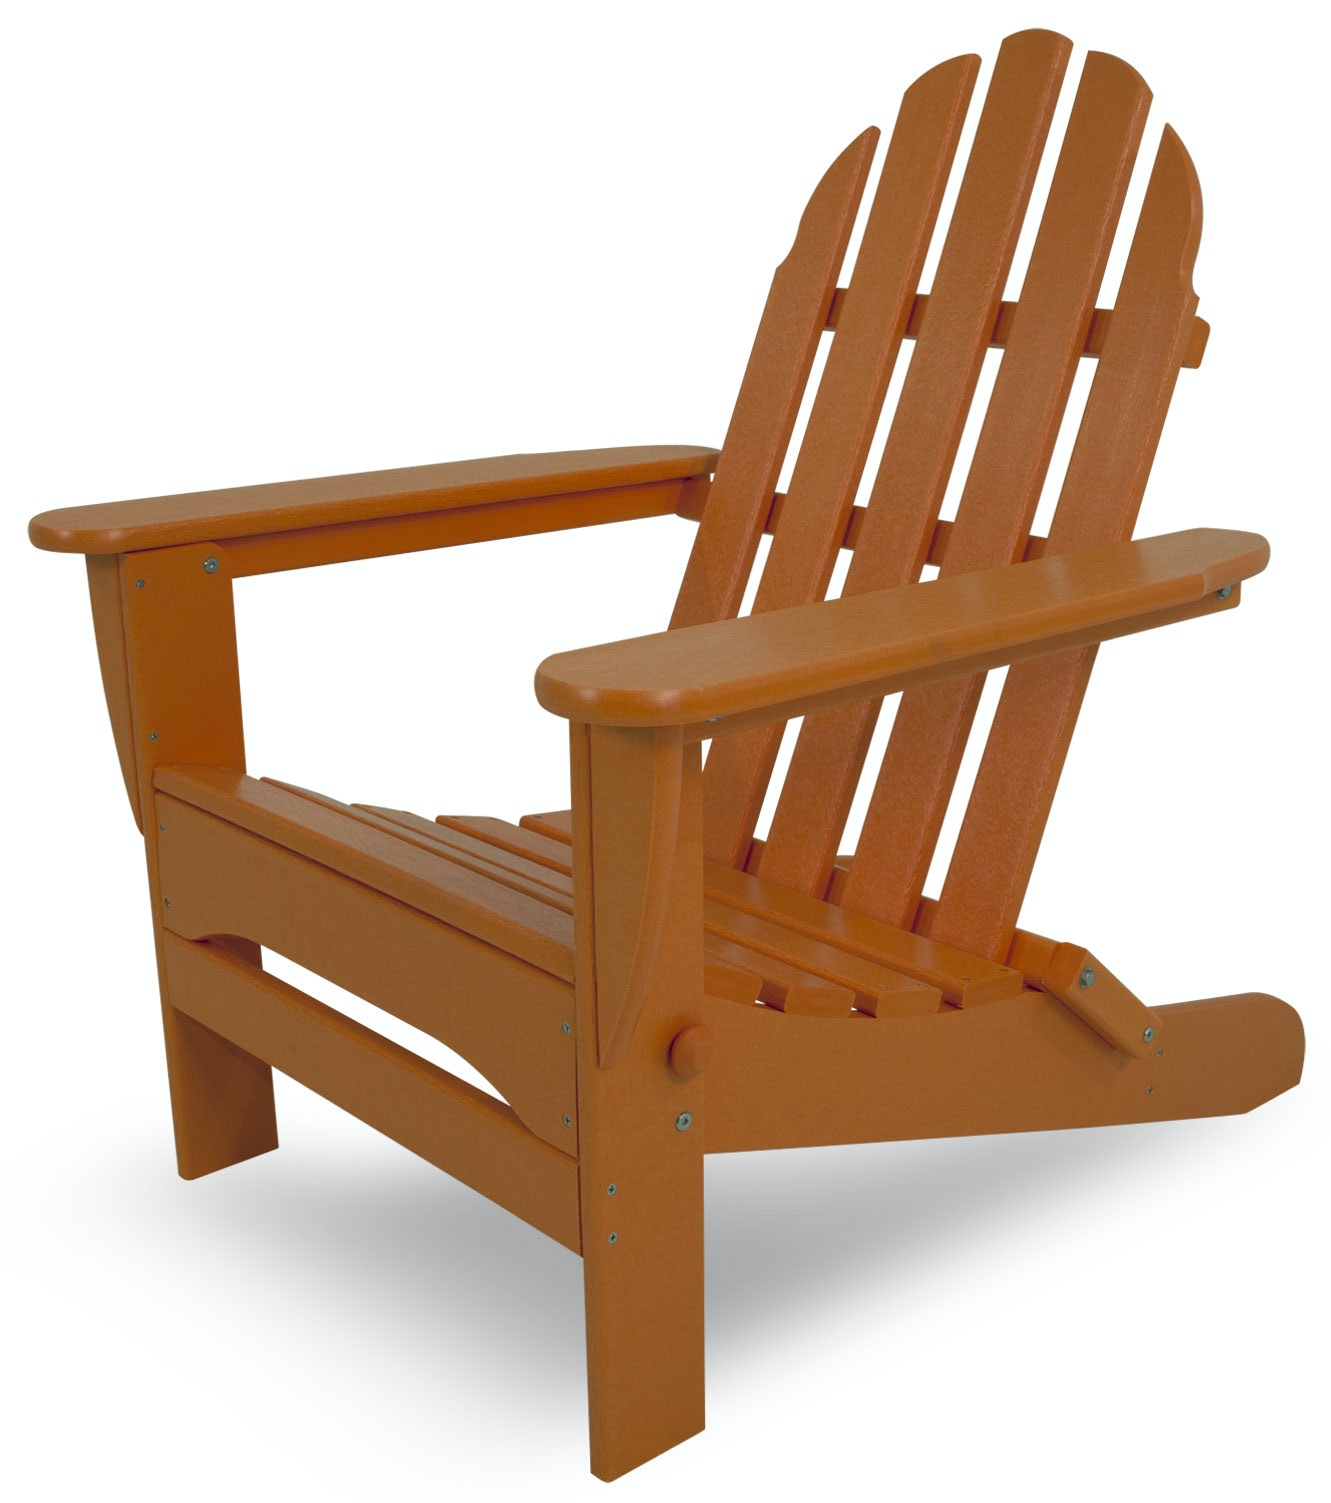 Westport Chair Co. TANGERINE CLASSIC FOLDING ADIRONDACK CHAIR WCC5030TAN  From Walter E. Smithe Furniture